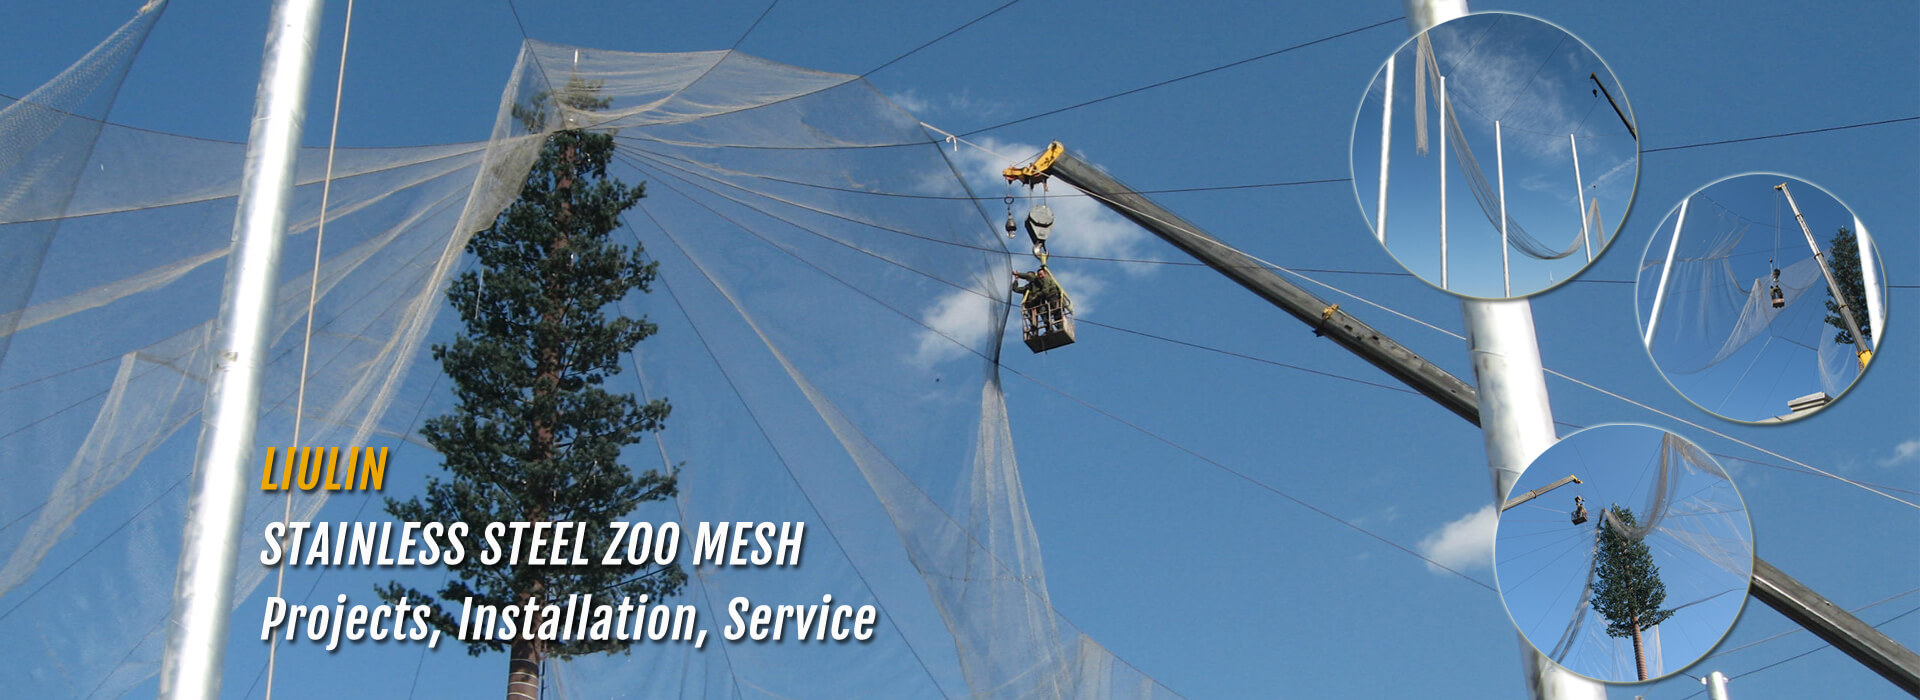 Zoo mesh, zoo netting, zoo enclosure mesh, bird netting, aviary ...